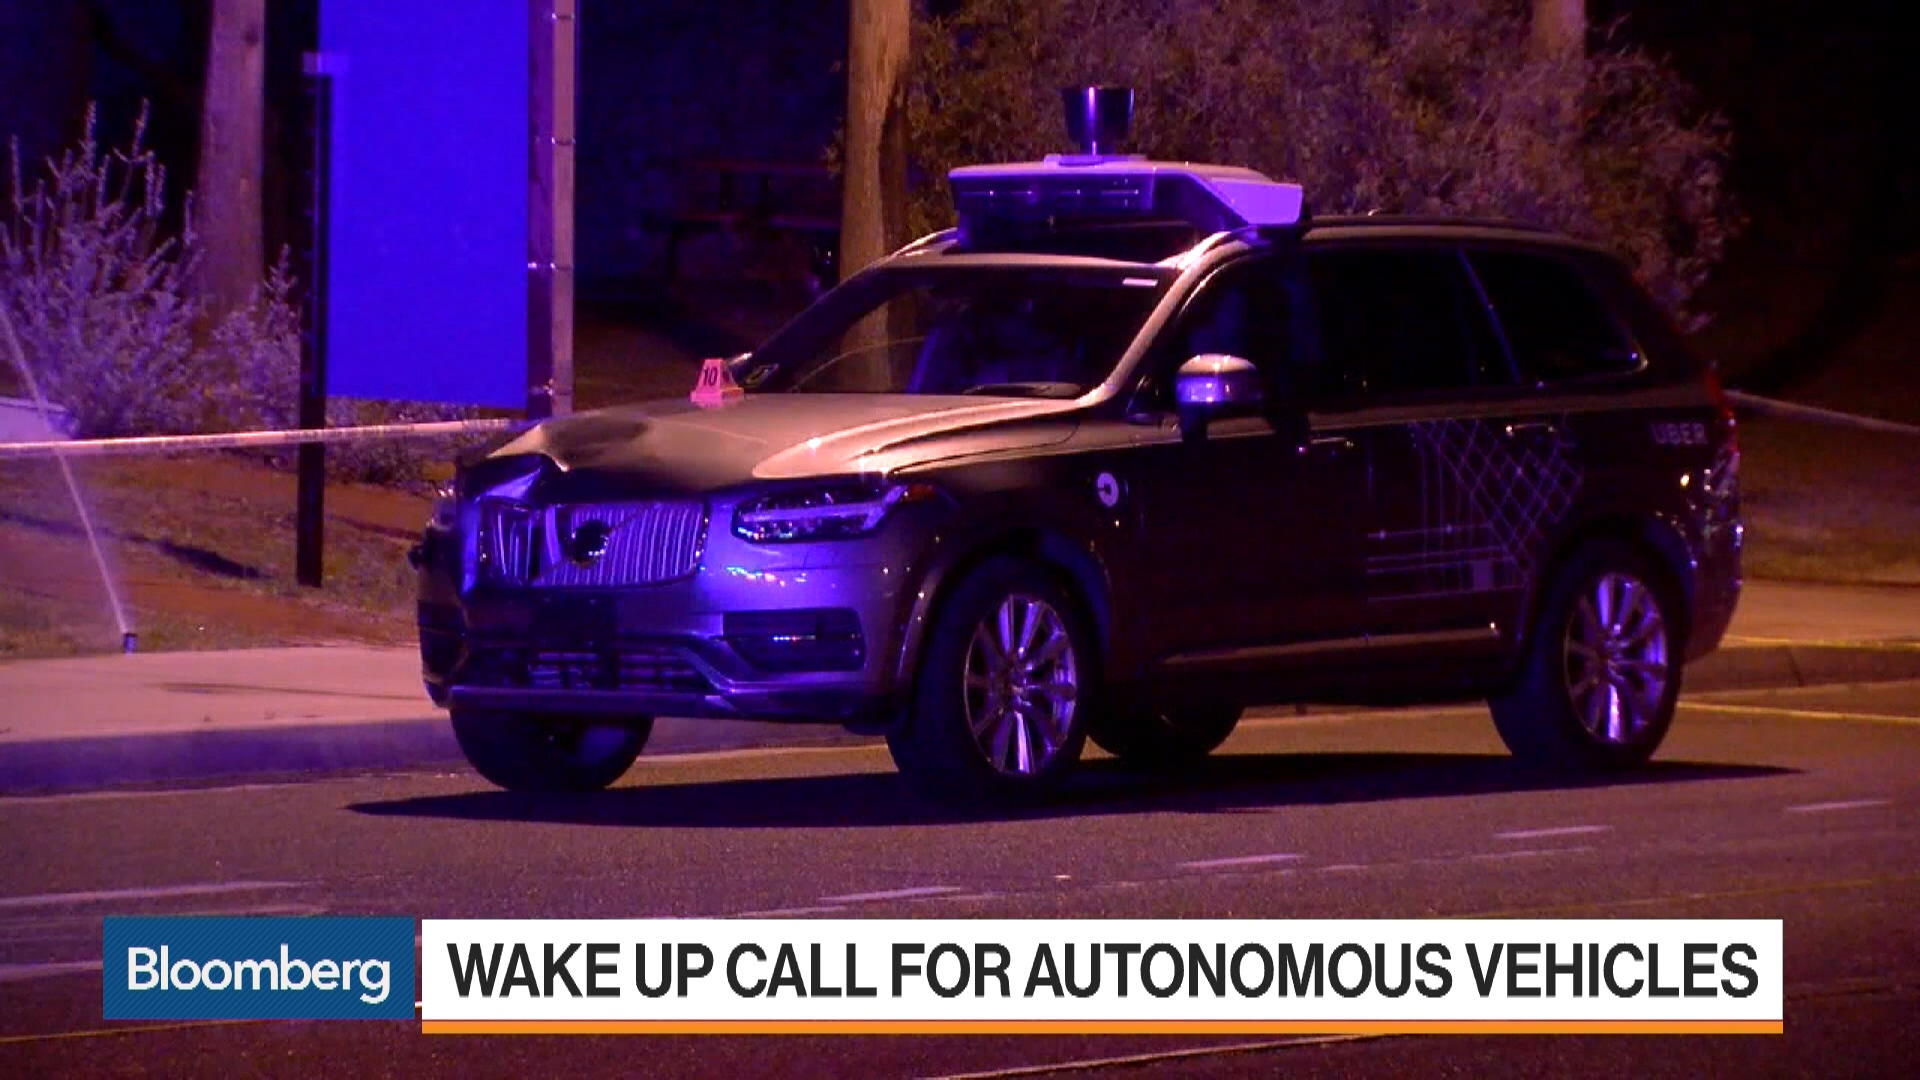 Human Driver Could Have Avoided Fatal Uber Crash, Experts Say